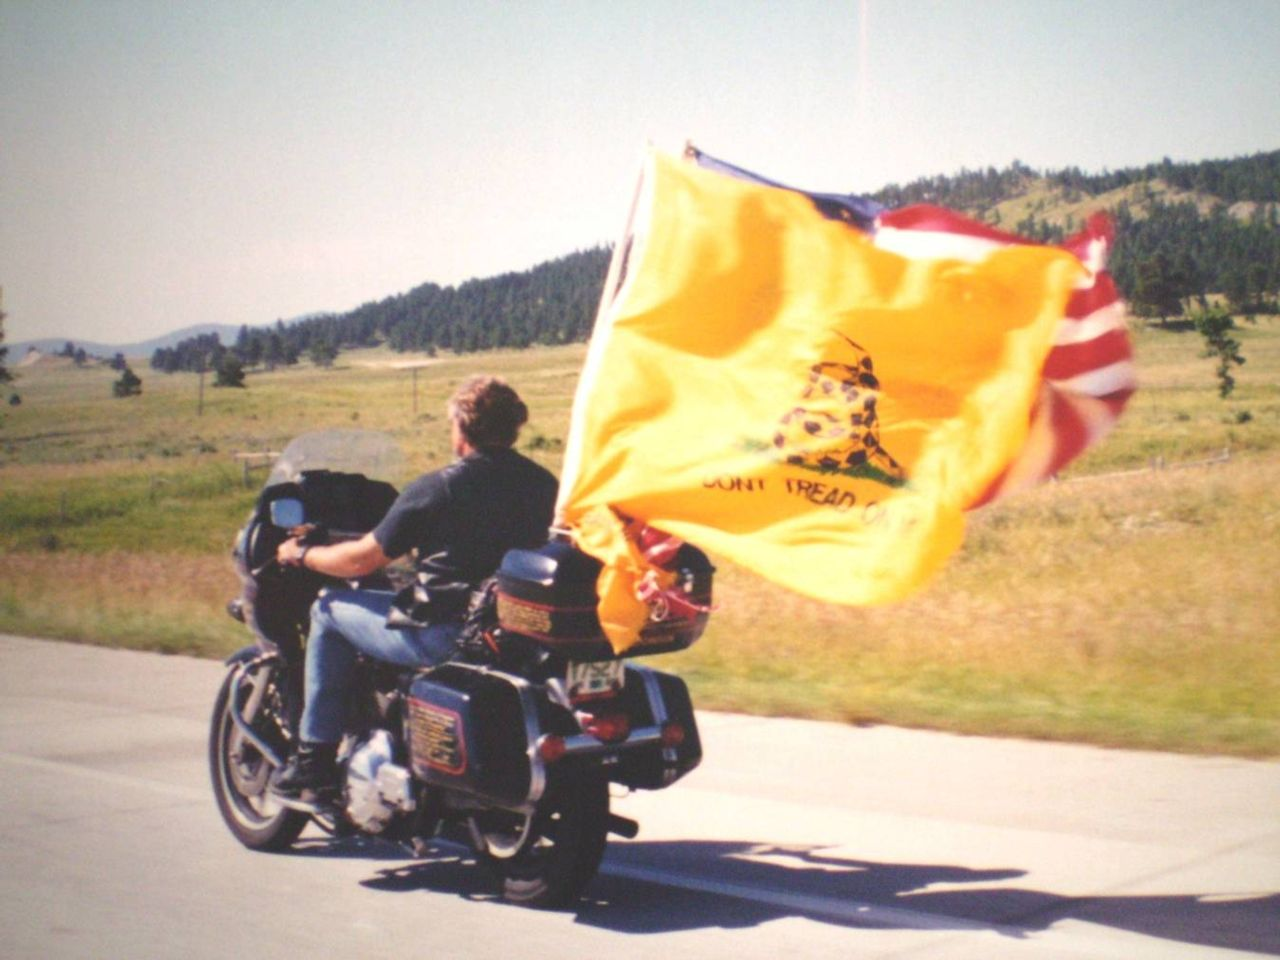 Man riding motorcycle out in the country with yellow Don't Tread on Me flag